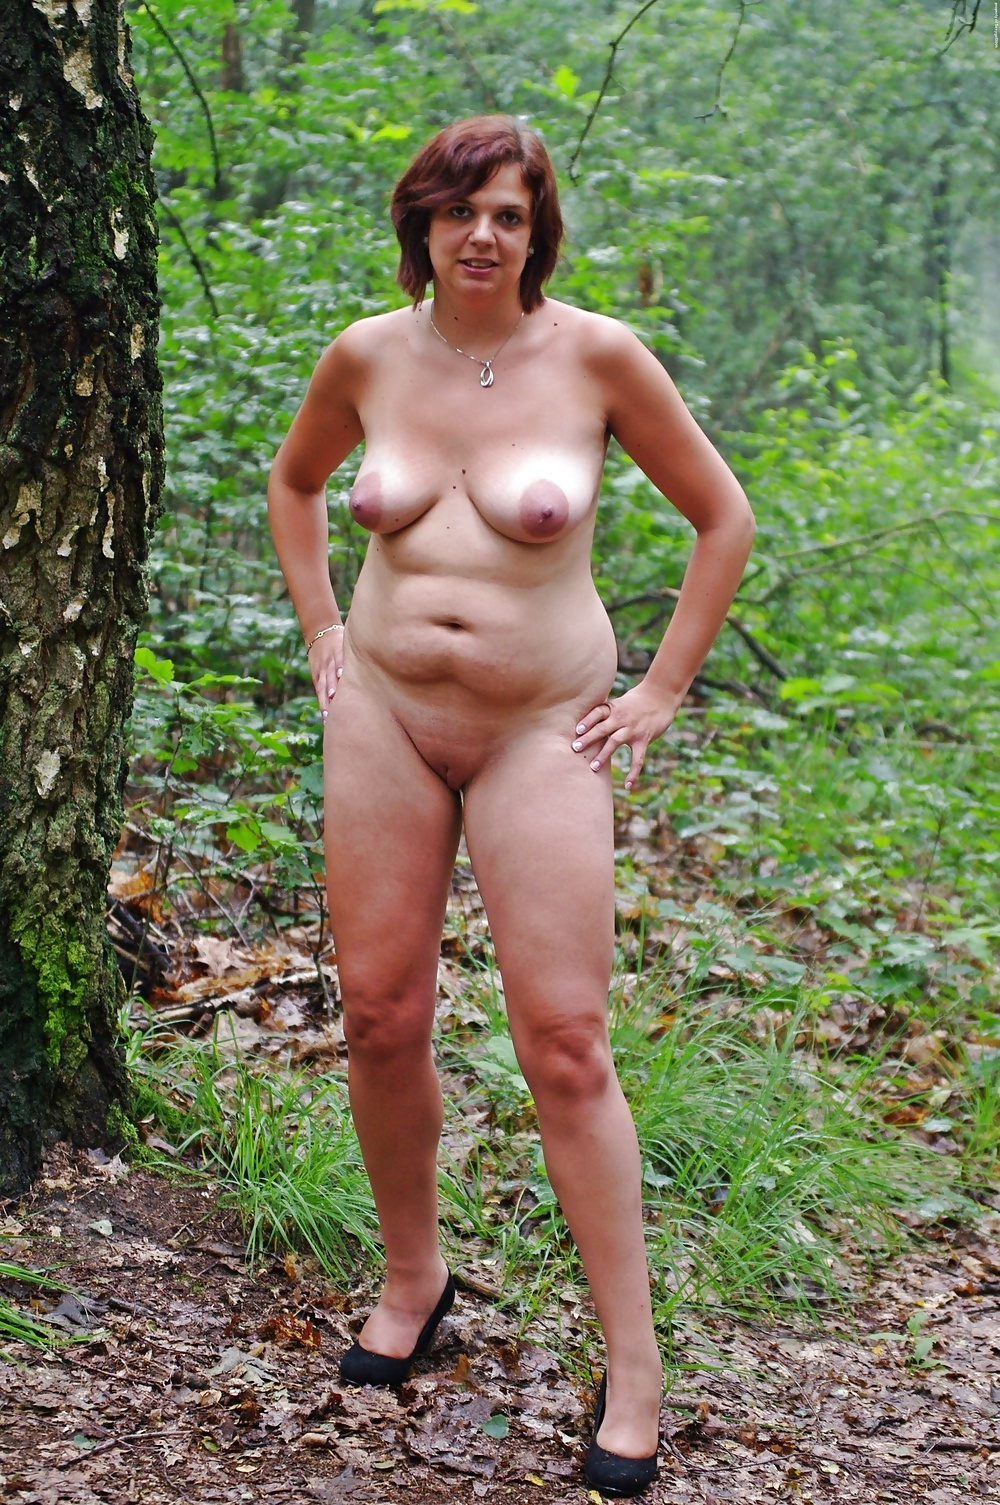 Boobs Woman Full Frontal Nude In Public Images